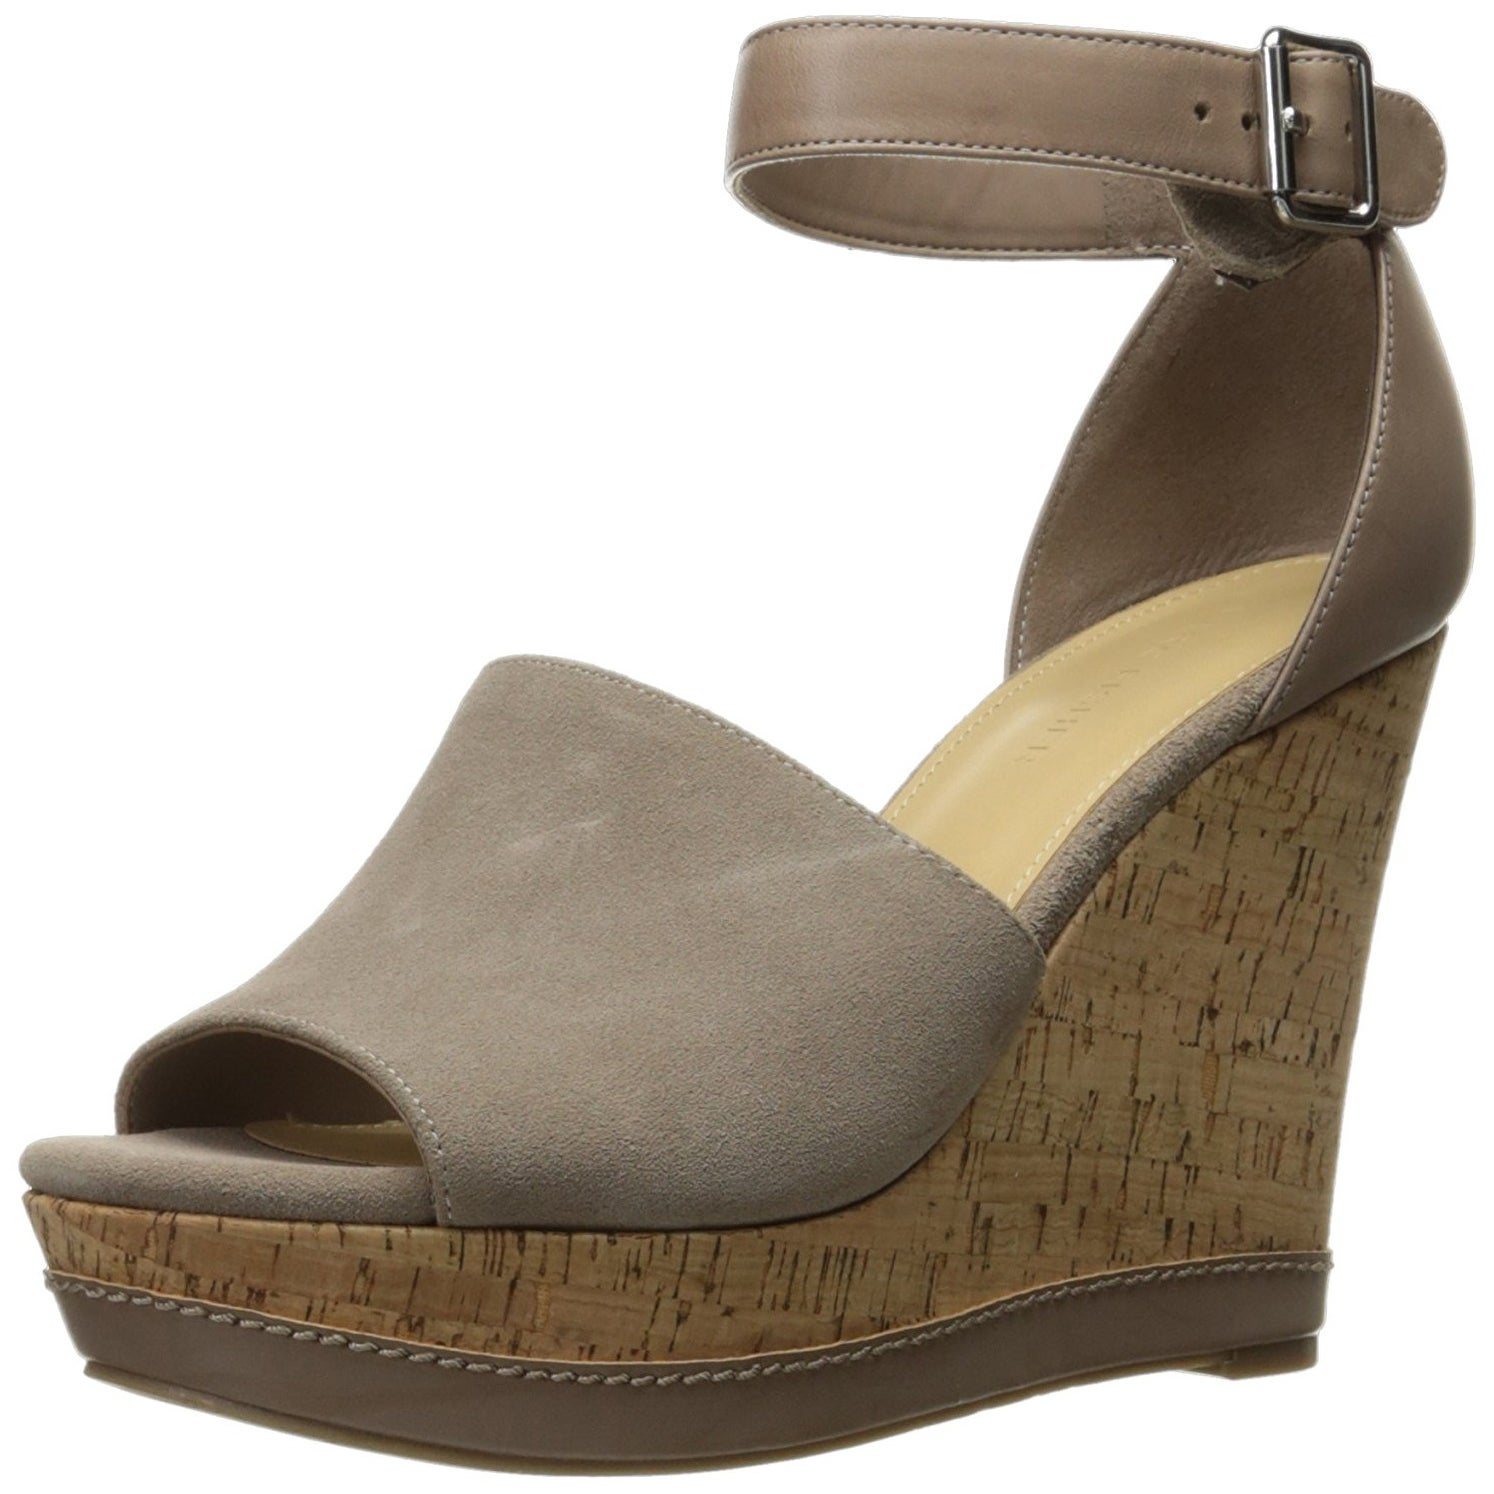 6362ee99 Shop Marc Fisher Womens Hillory Leather Open Toe Casual Platform ...